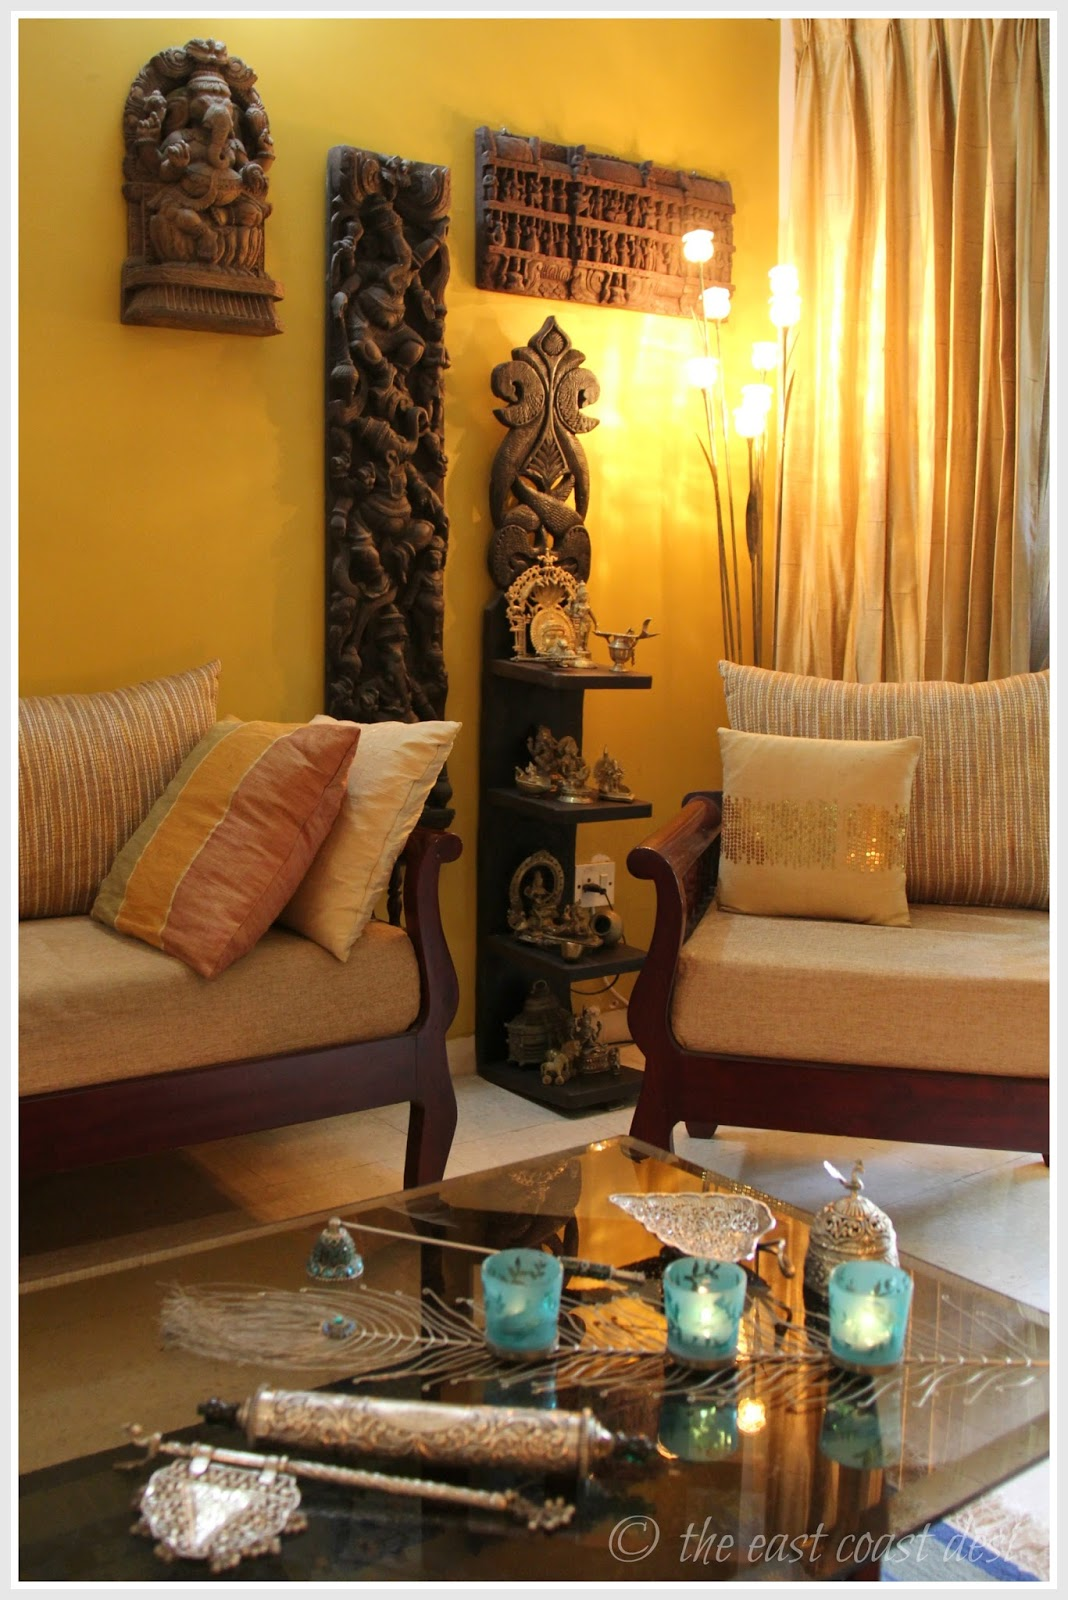 Indian Home Design: The East Coast Desi: Living With What You Love (Home Tour